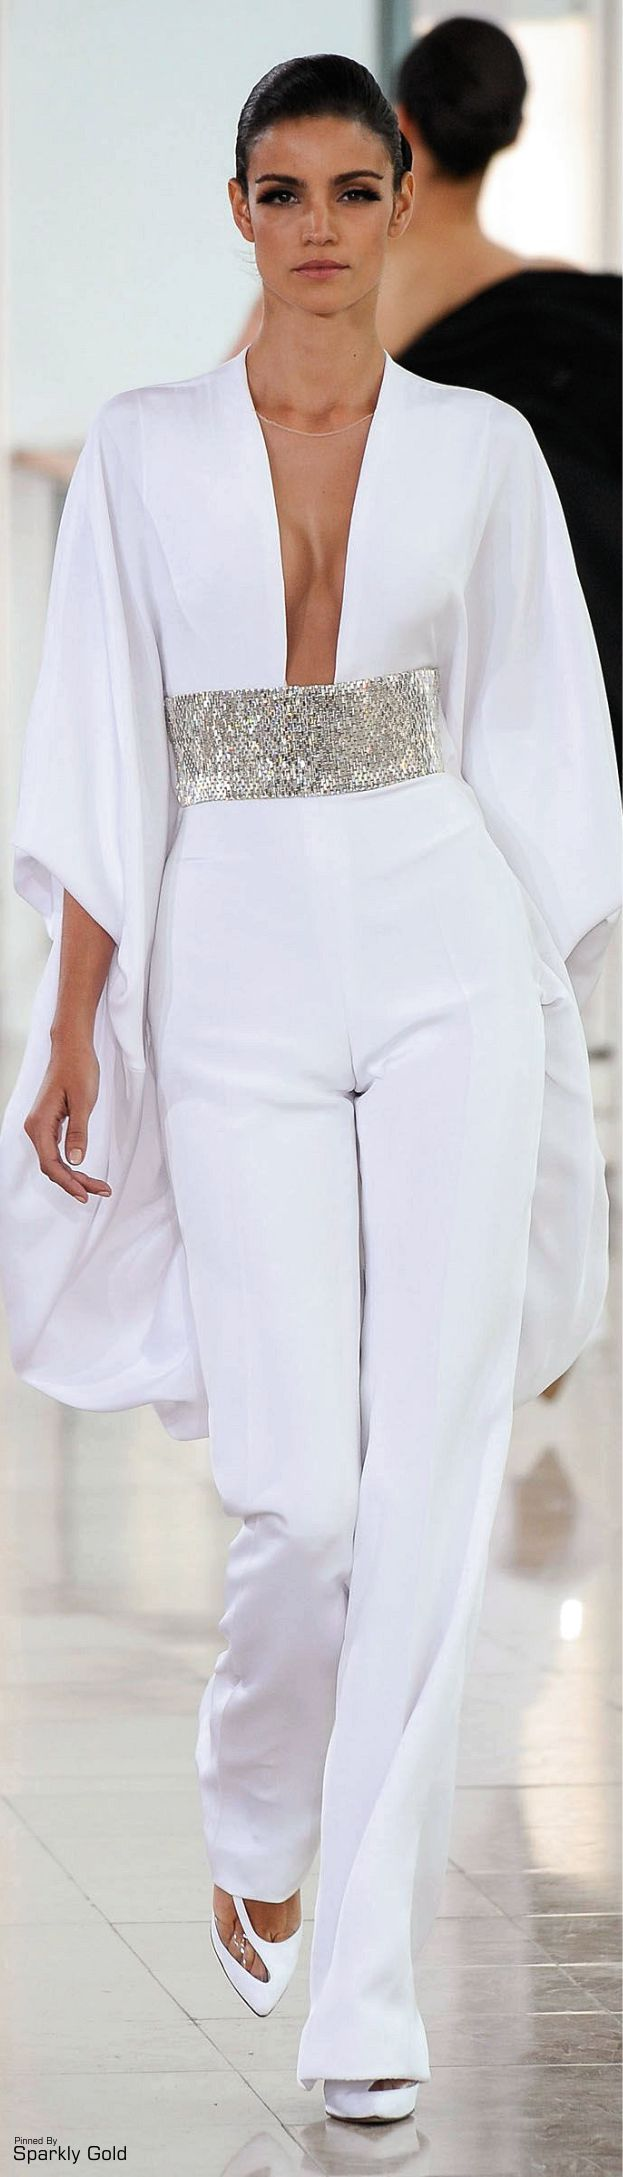 best moda images on pinterest cute dresses fashion ideas and